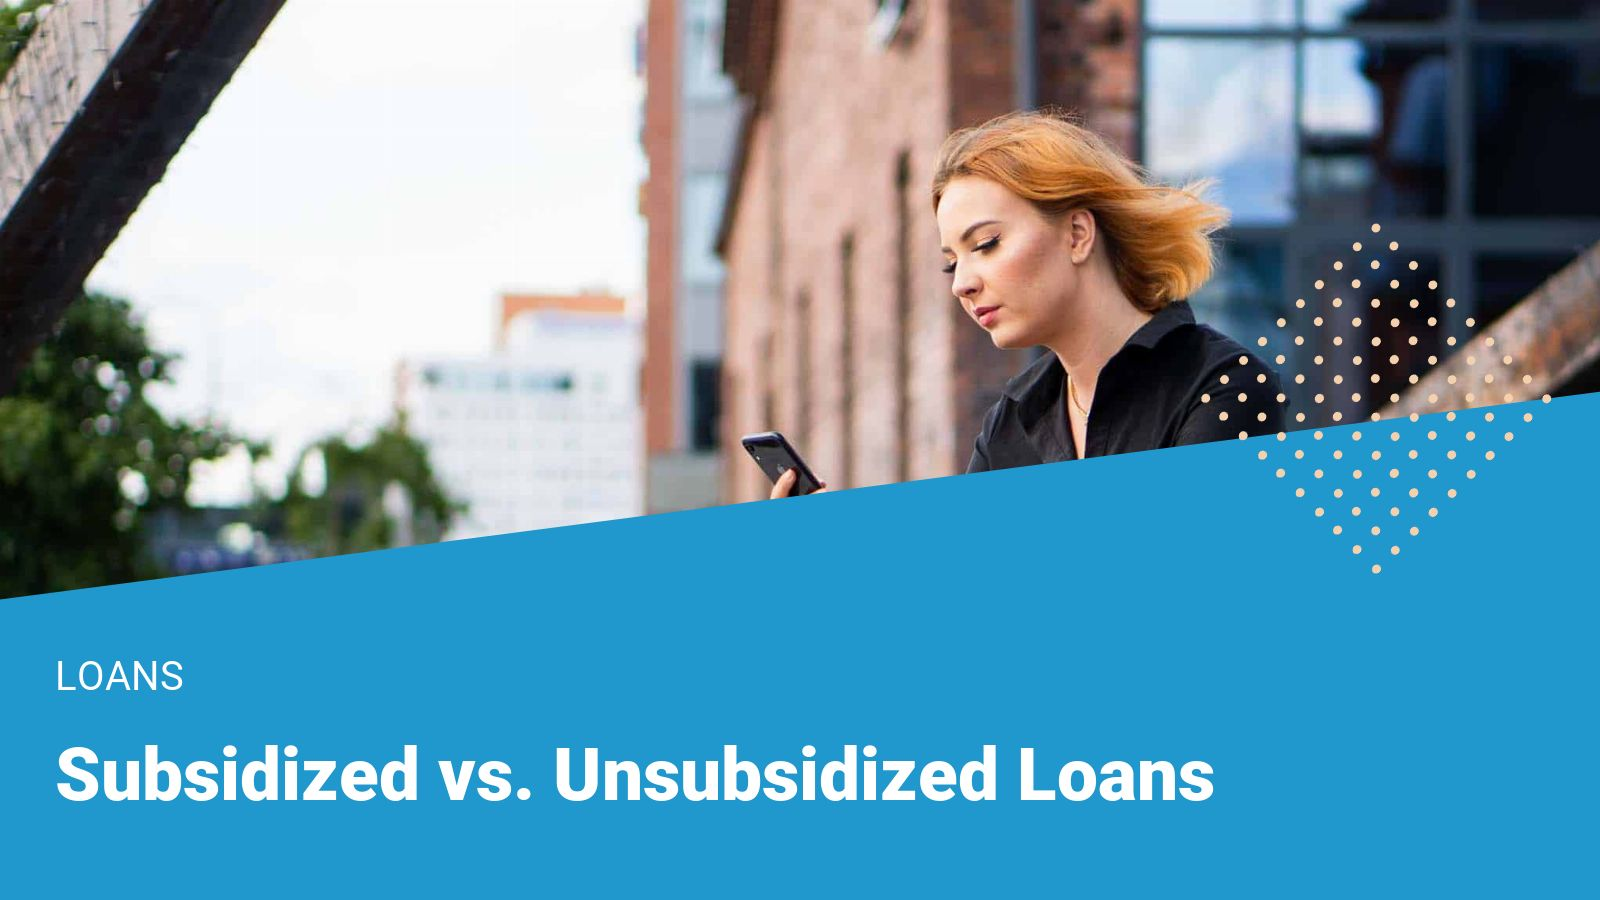 Subsidized vs Unsubsidized Loans